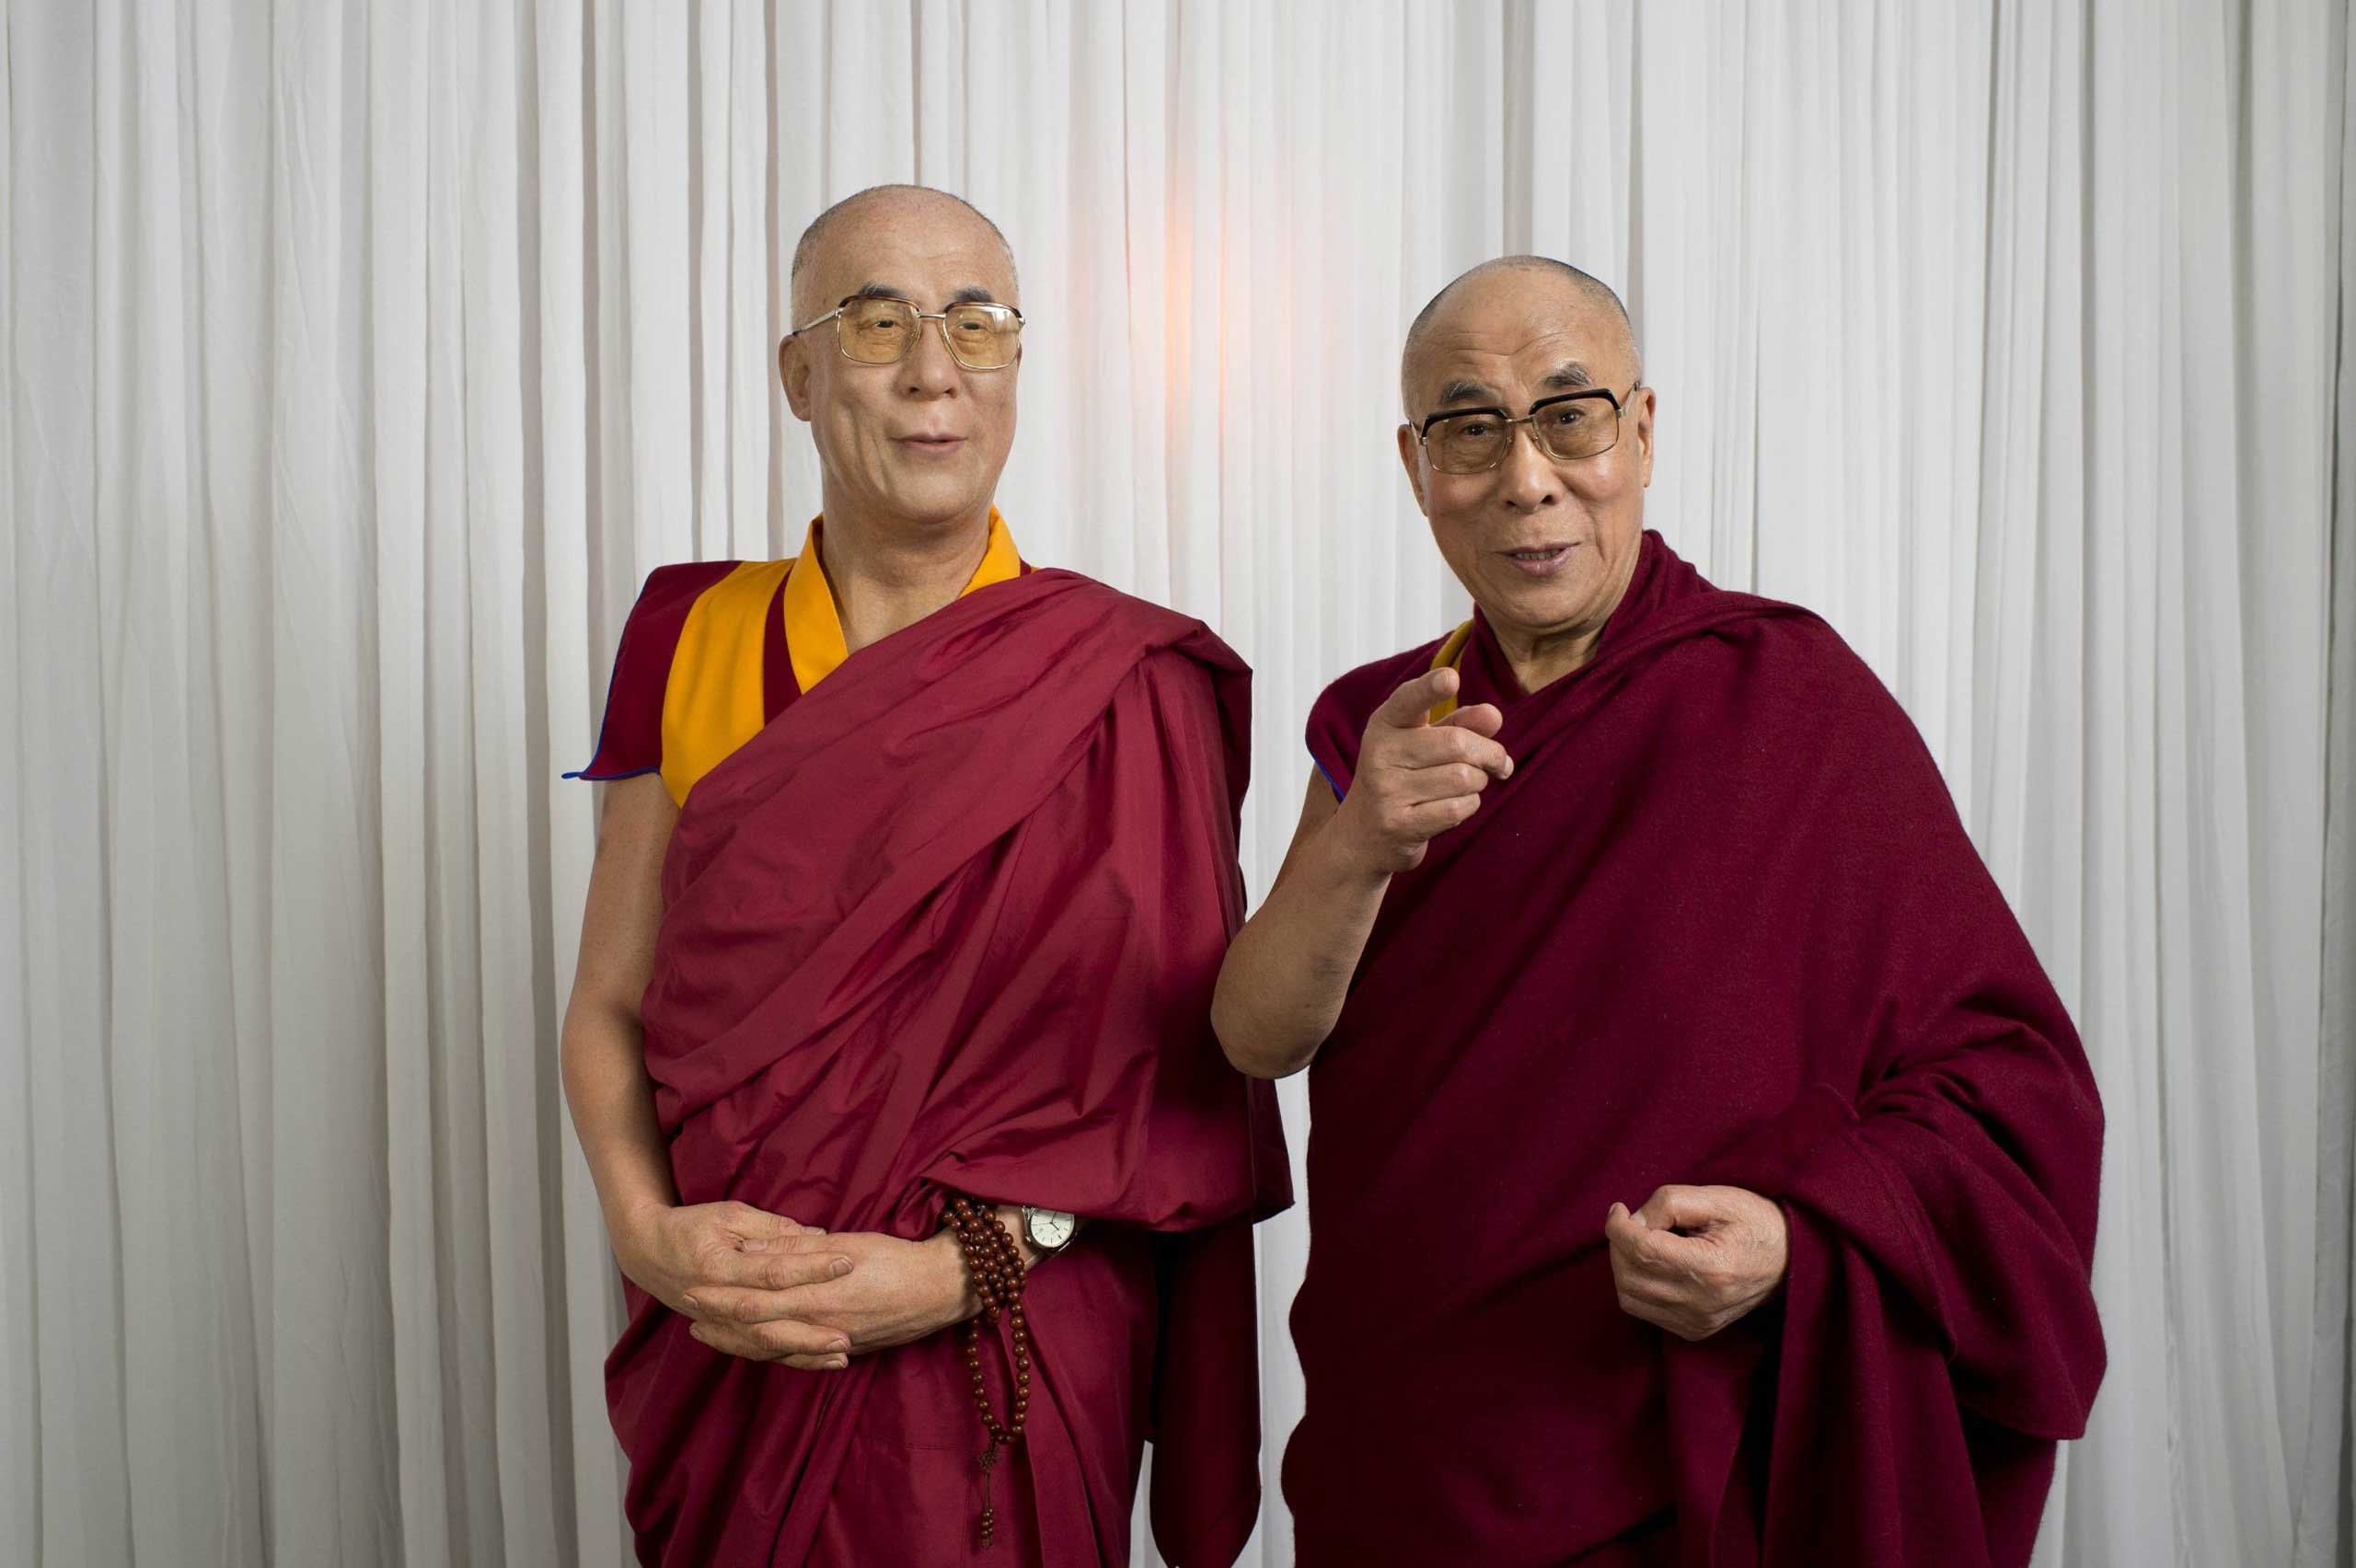 The Dalai Lama visits Madame Tussauds and poses with a wax figure of himself in Sydney in June 2013.